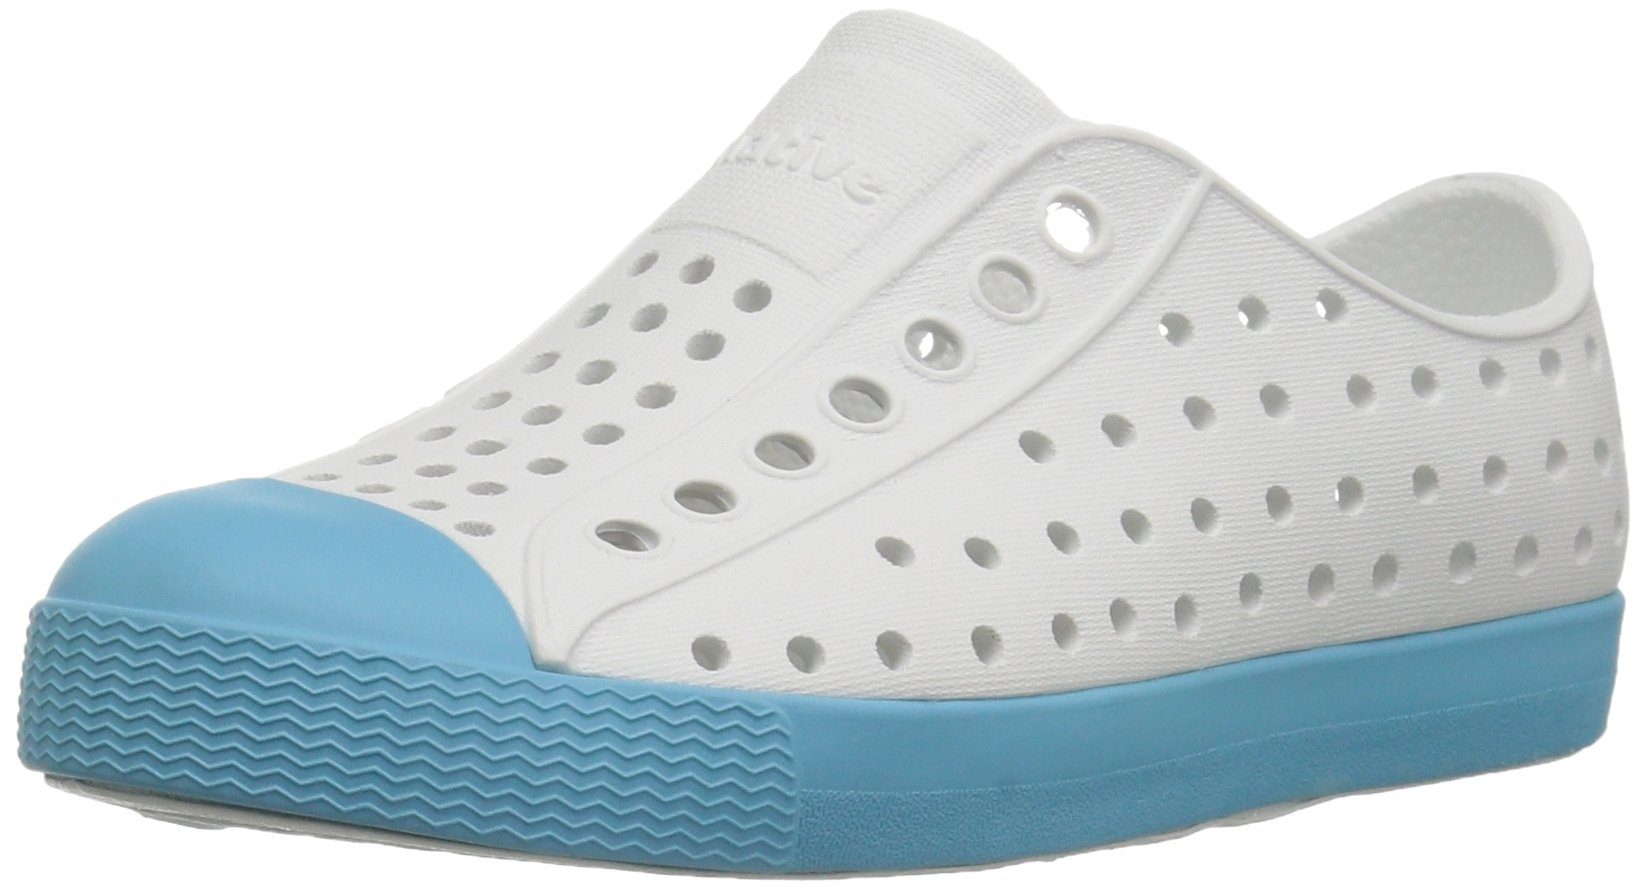 Native Kids Jefferson Water Proof Shoes, Shell White/Surfer Blue, 4 Medium US Toddler